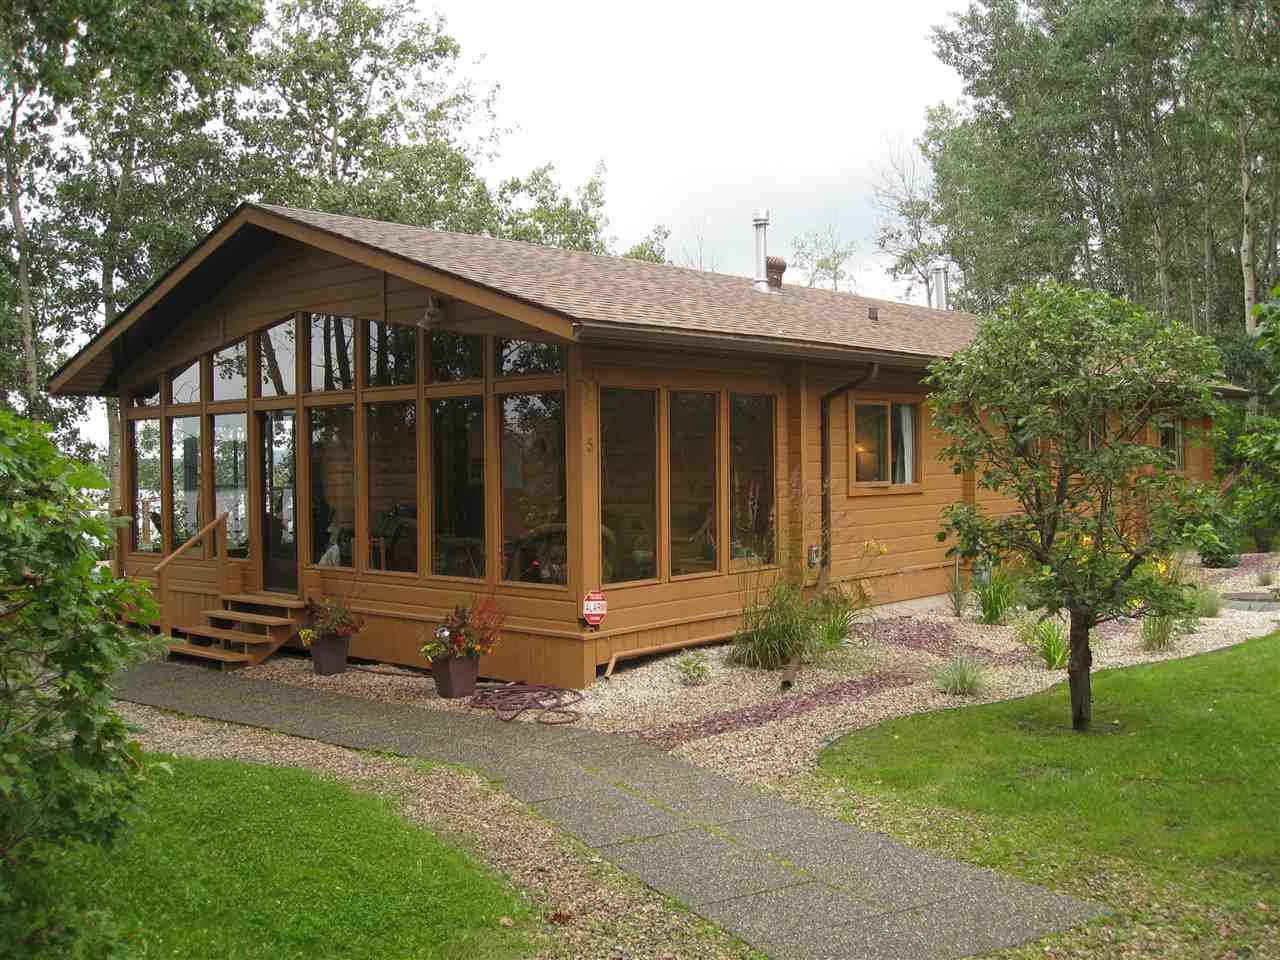 Photo 19: Photos: 5, 1319 Twp Rd 550: Rural Lac Ste. Anne County House for sale : MLS®# E4167720